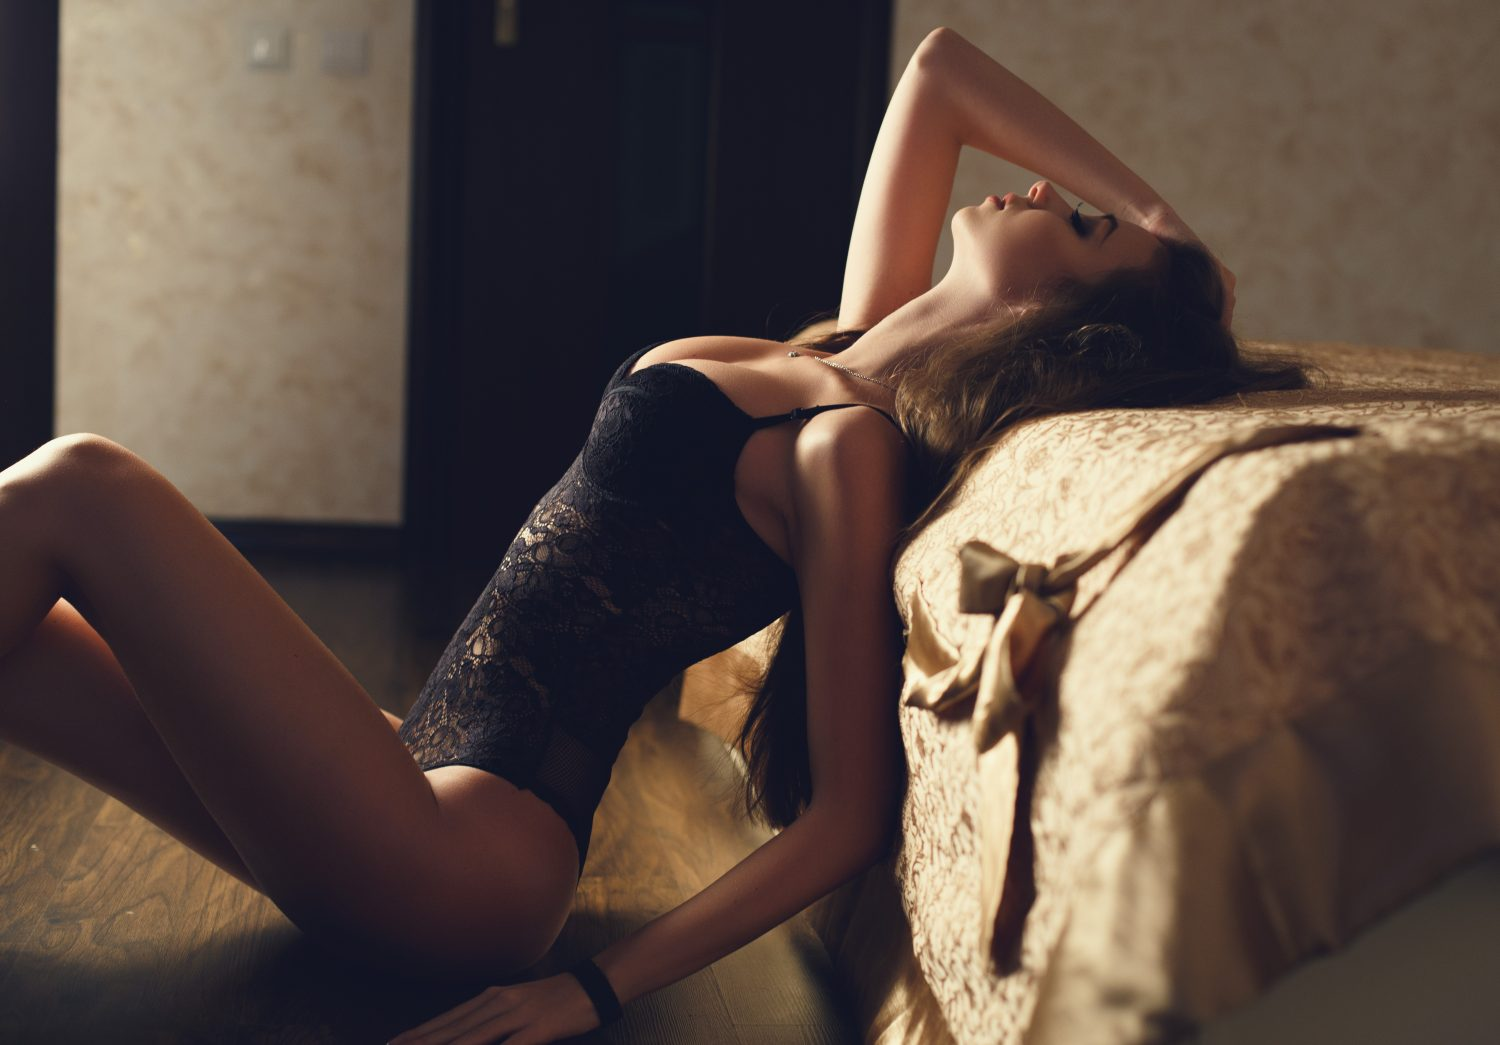 horny girls, it's normal to want sex and here is why